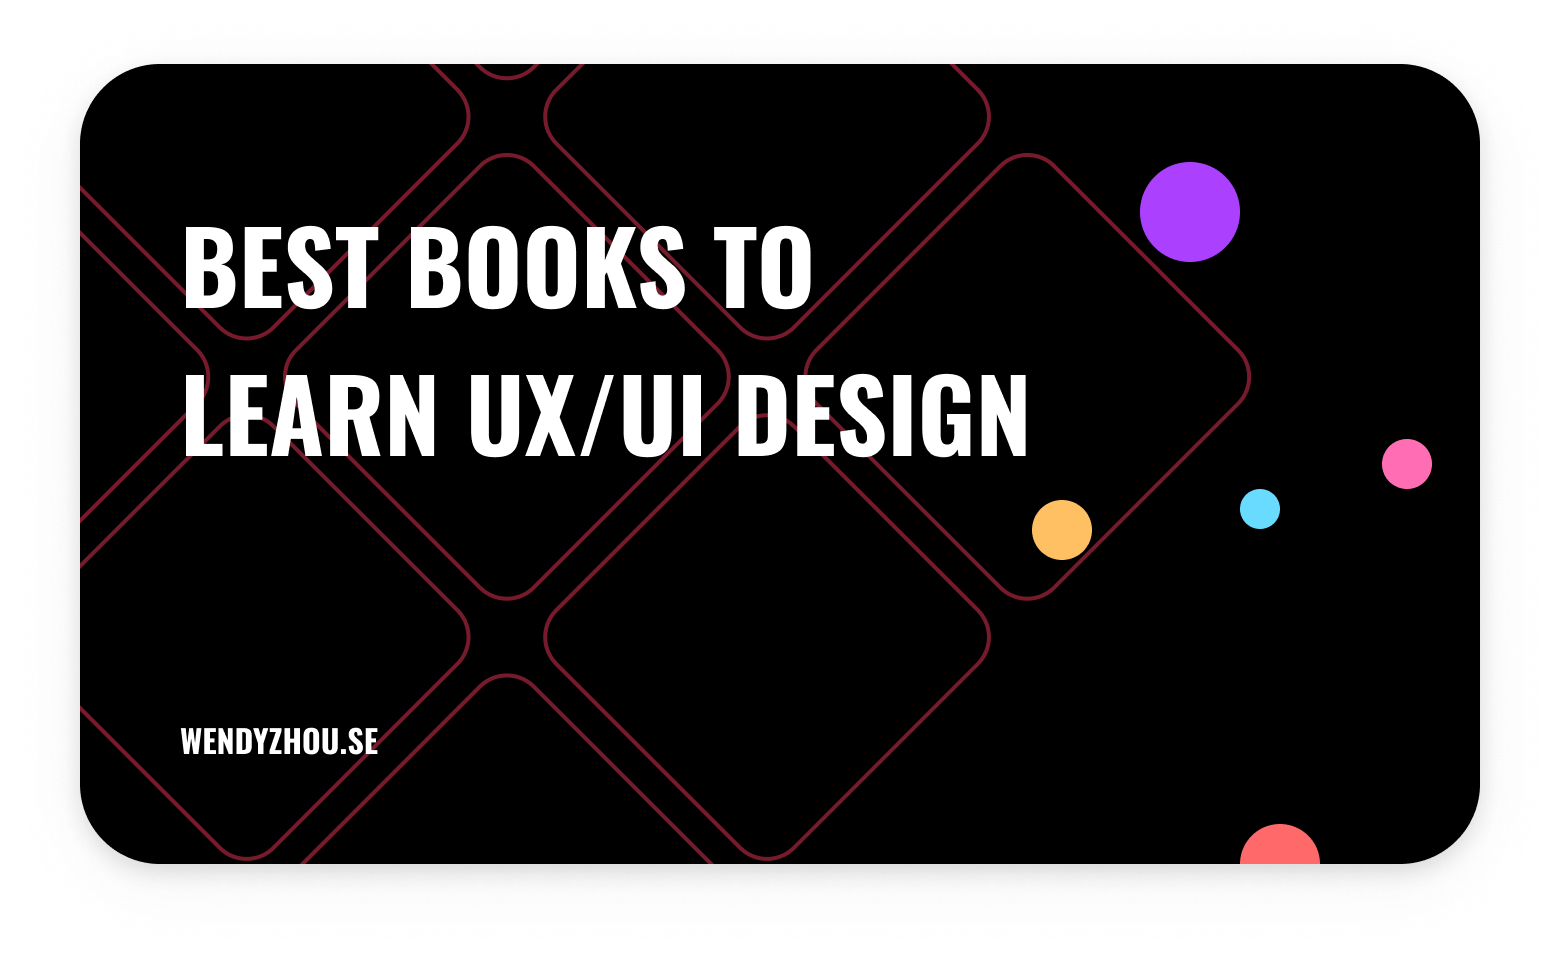 Best 4 Books to Learn UX/UI Design for Beginners